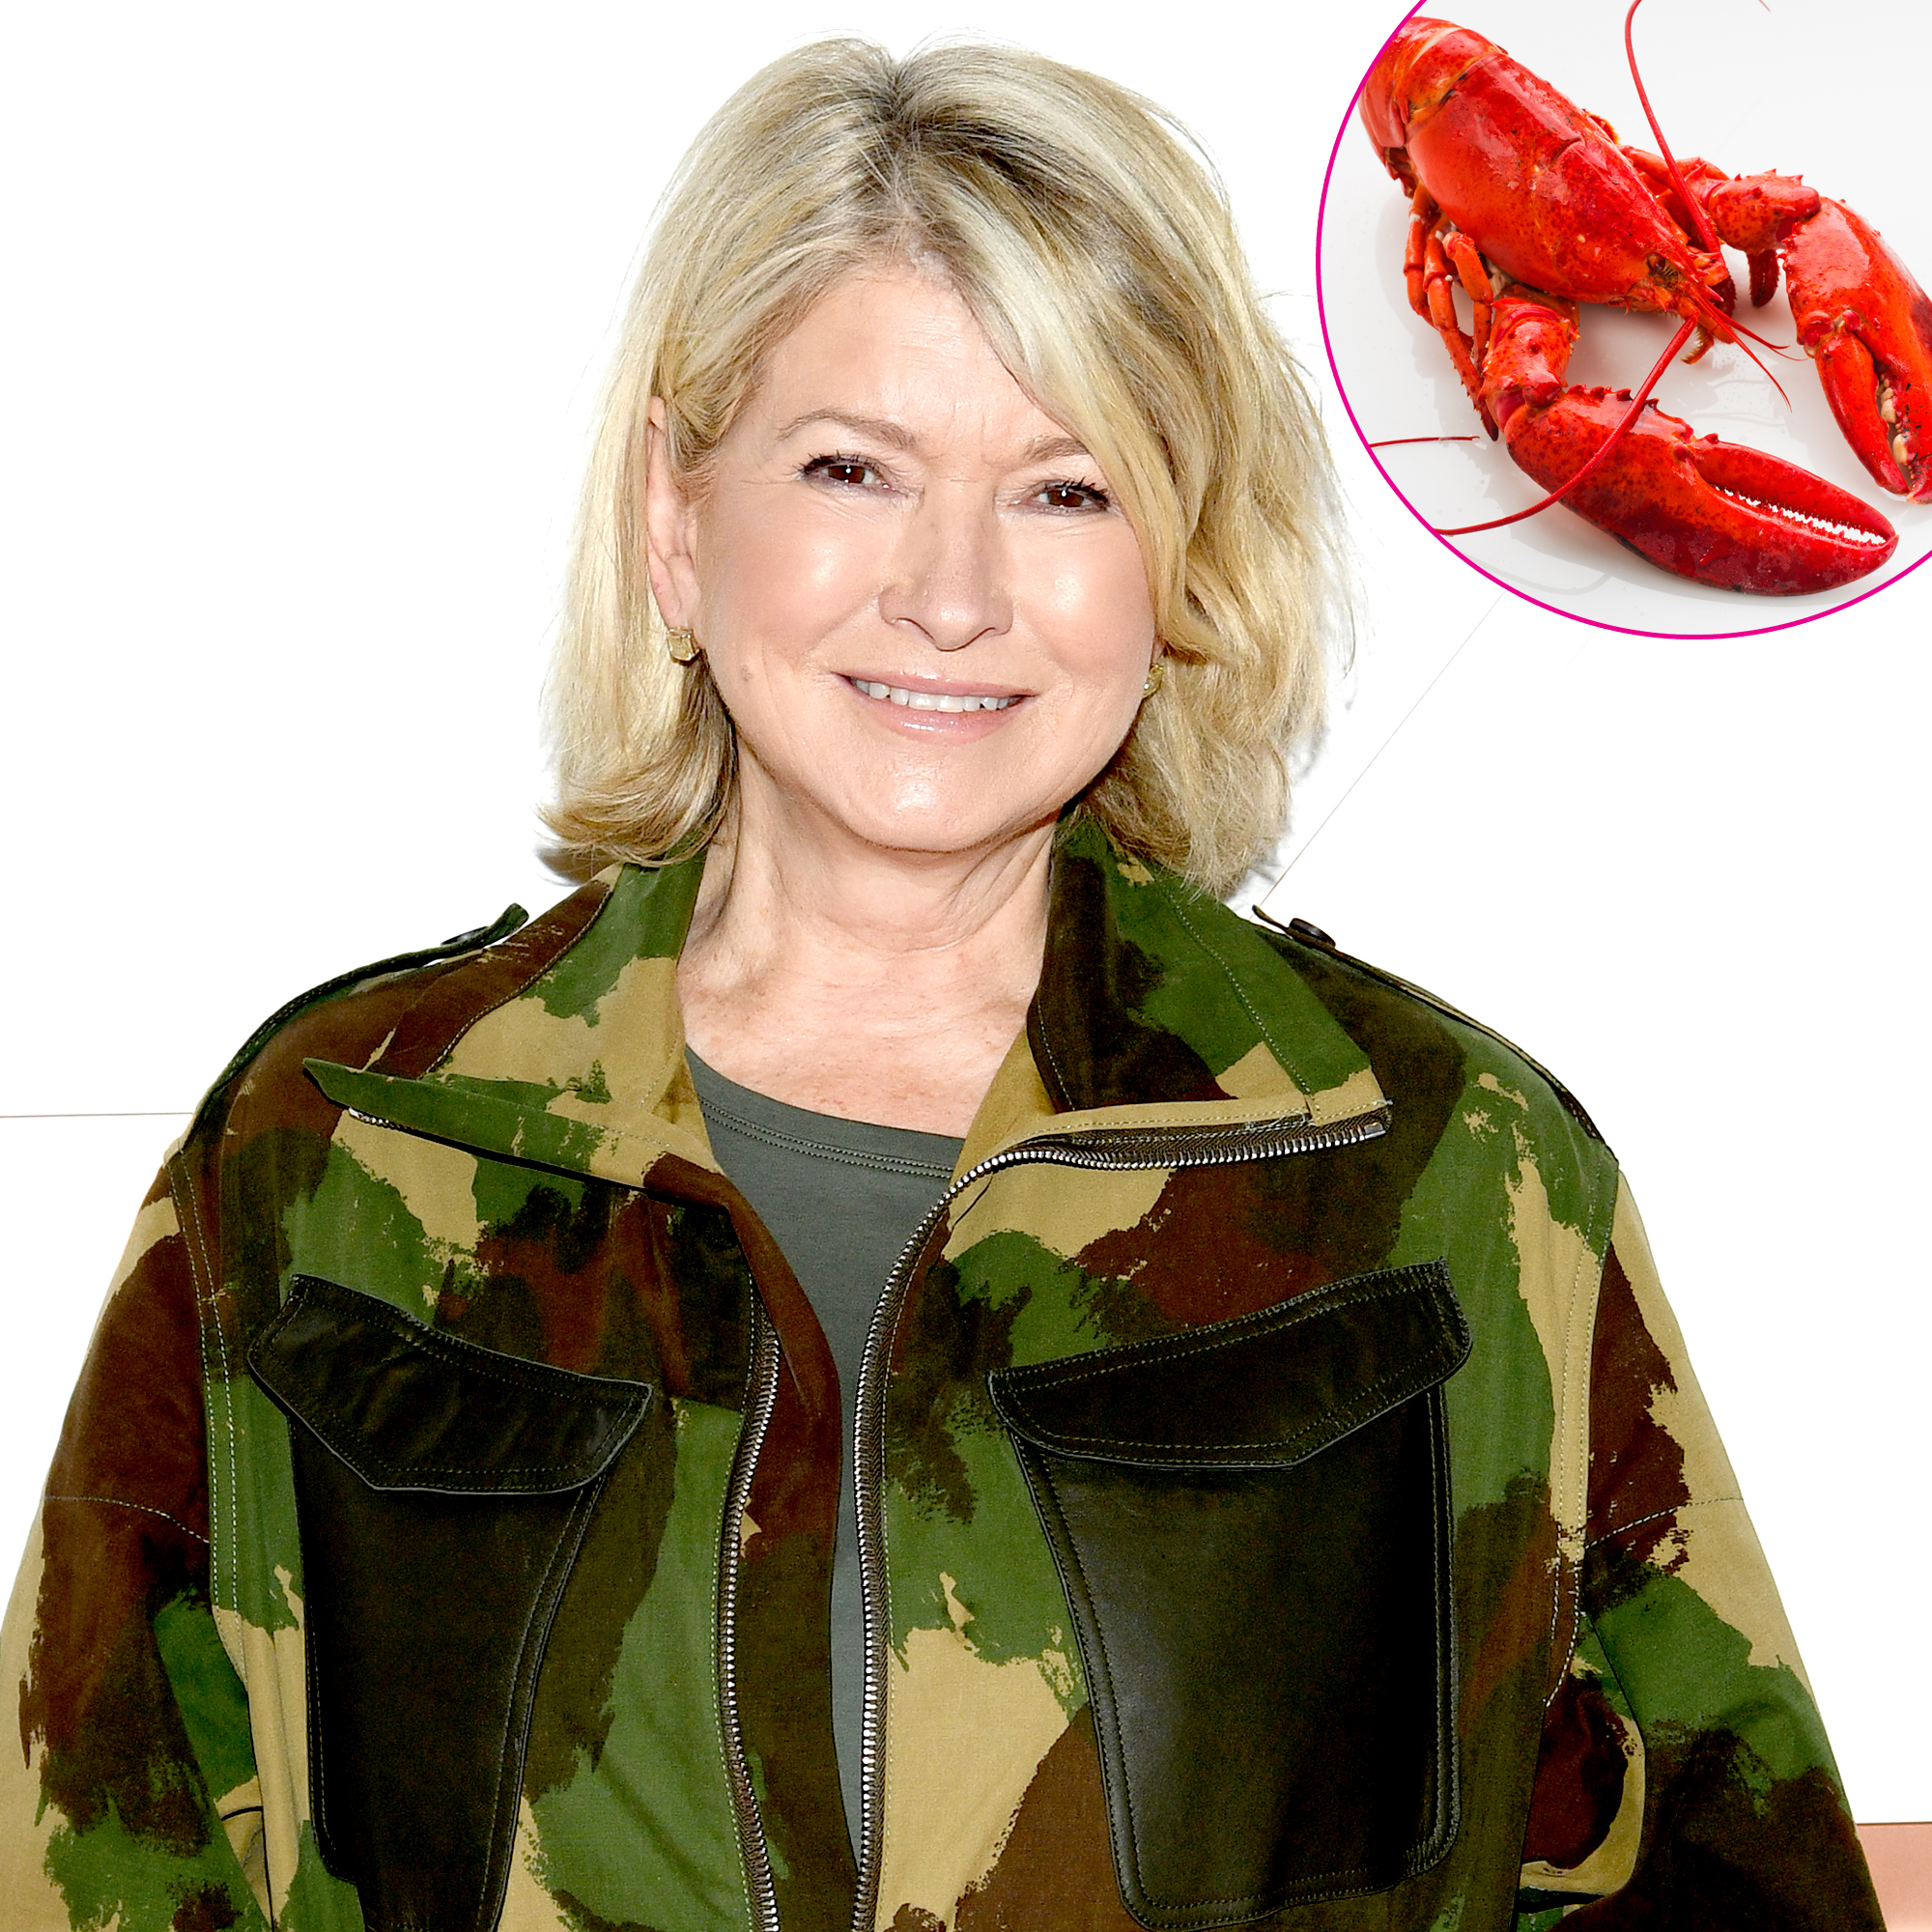 """Martha-Stewart's-Drunk-Lobsters - Proving her fondness for weird hacks extends well beyond breakfast, the Martha & Snoop's Potluck Dinner Party star has also raised eyebrows in the past discussing an interesting hack she employs when boiling lobsters. During a Facebook Live video with Jennifer Garner in 2018 she explained, """"I boil mine for about 15 minutes. I put them in boiling water with vodka or tequila. I give them a drink. That """"drink"""" is about half a cup of booze. Reasoned the mogul: """"If you were going to be boiled alive, wouldn't you like to have a drink first?"""""""